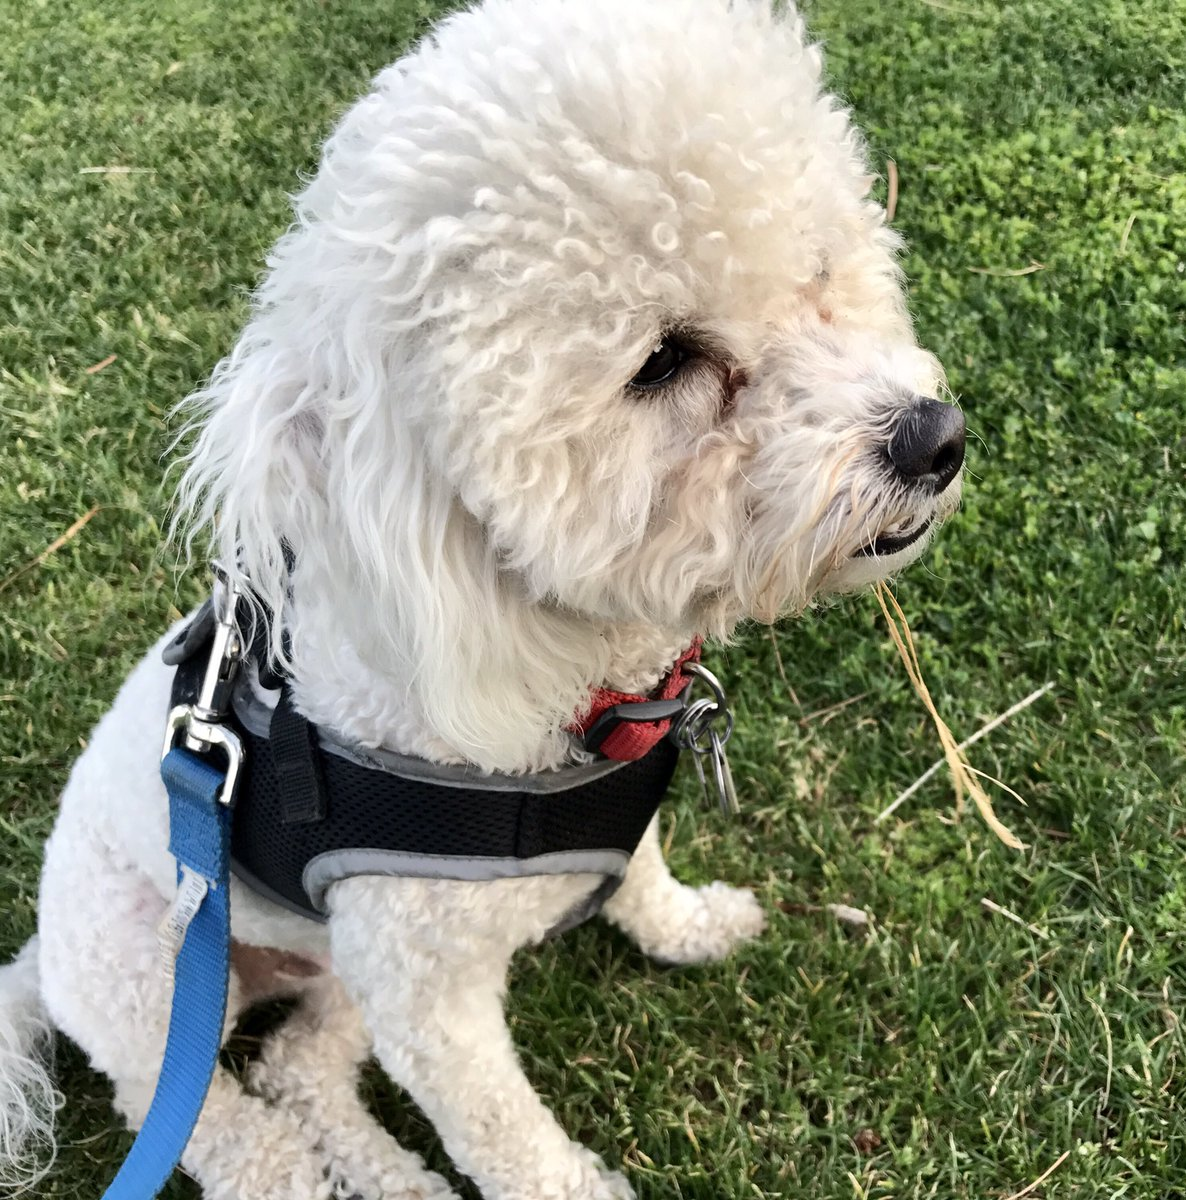 We lost our white 12# male Bichon Frise at 7pm today in Cypress CA near Orange/Moody no collar - 310.508.7909 https://t.co/jL2oQVDK84